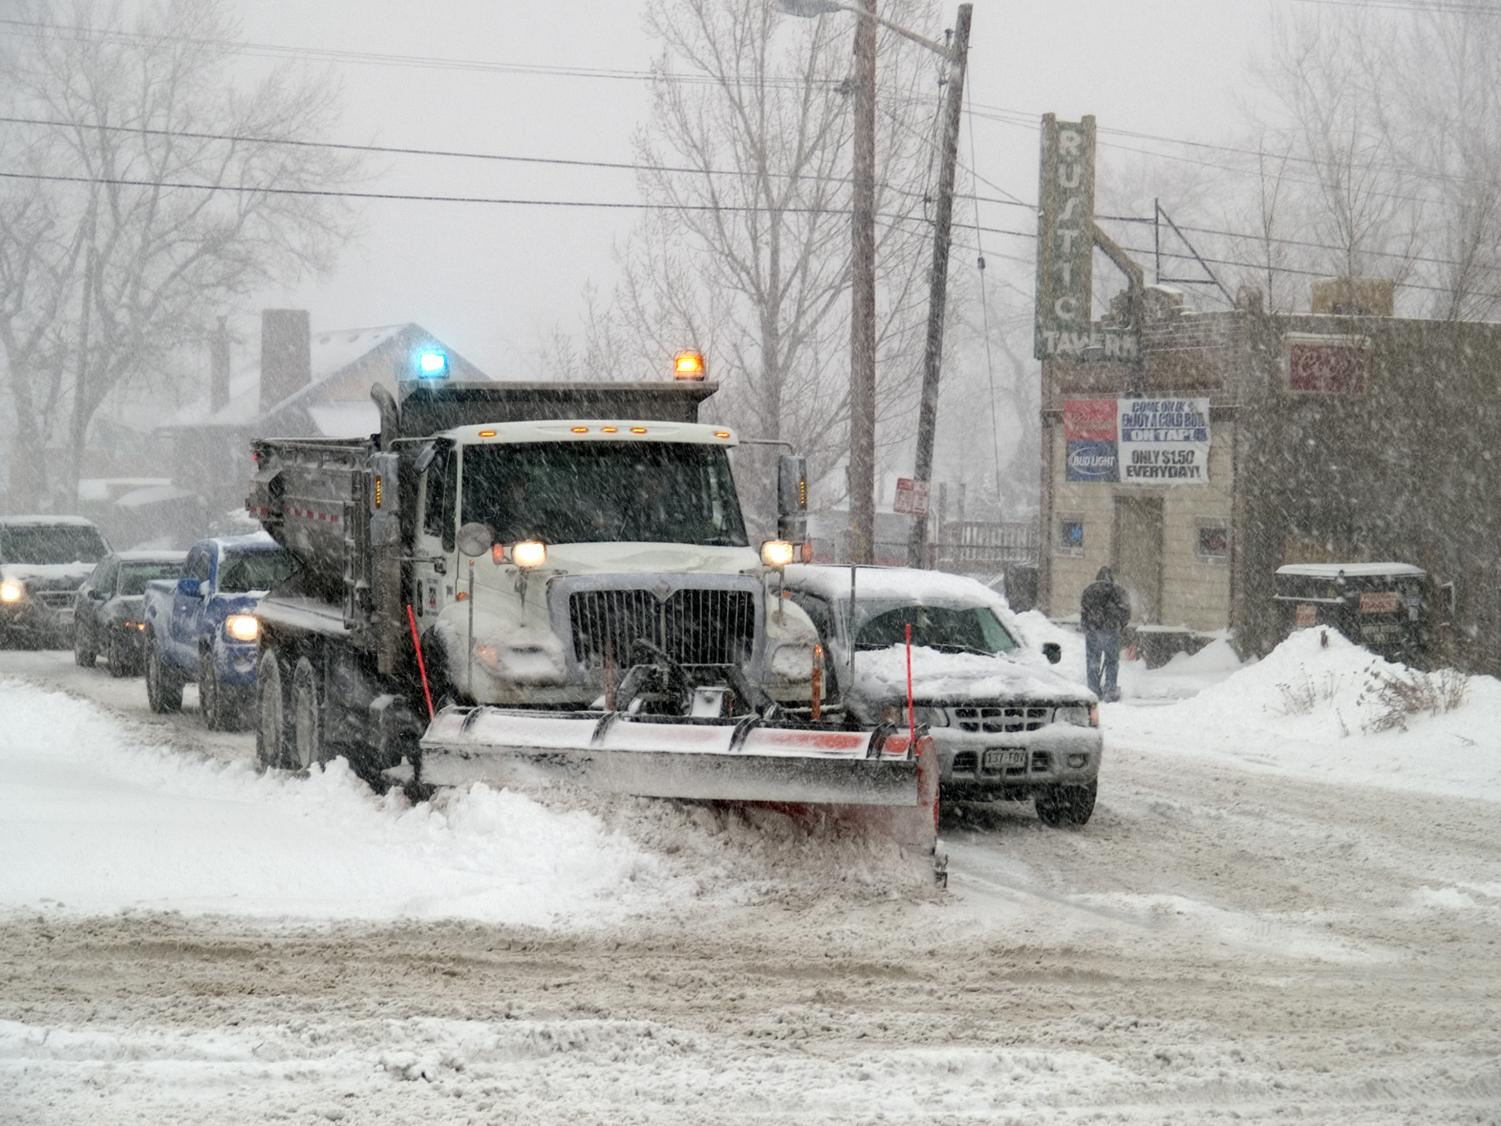 A snow plow clears the road to make it safe and drivable for people. It is important for people to get to work and school, no matter the weather.